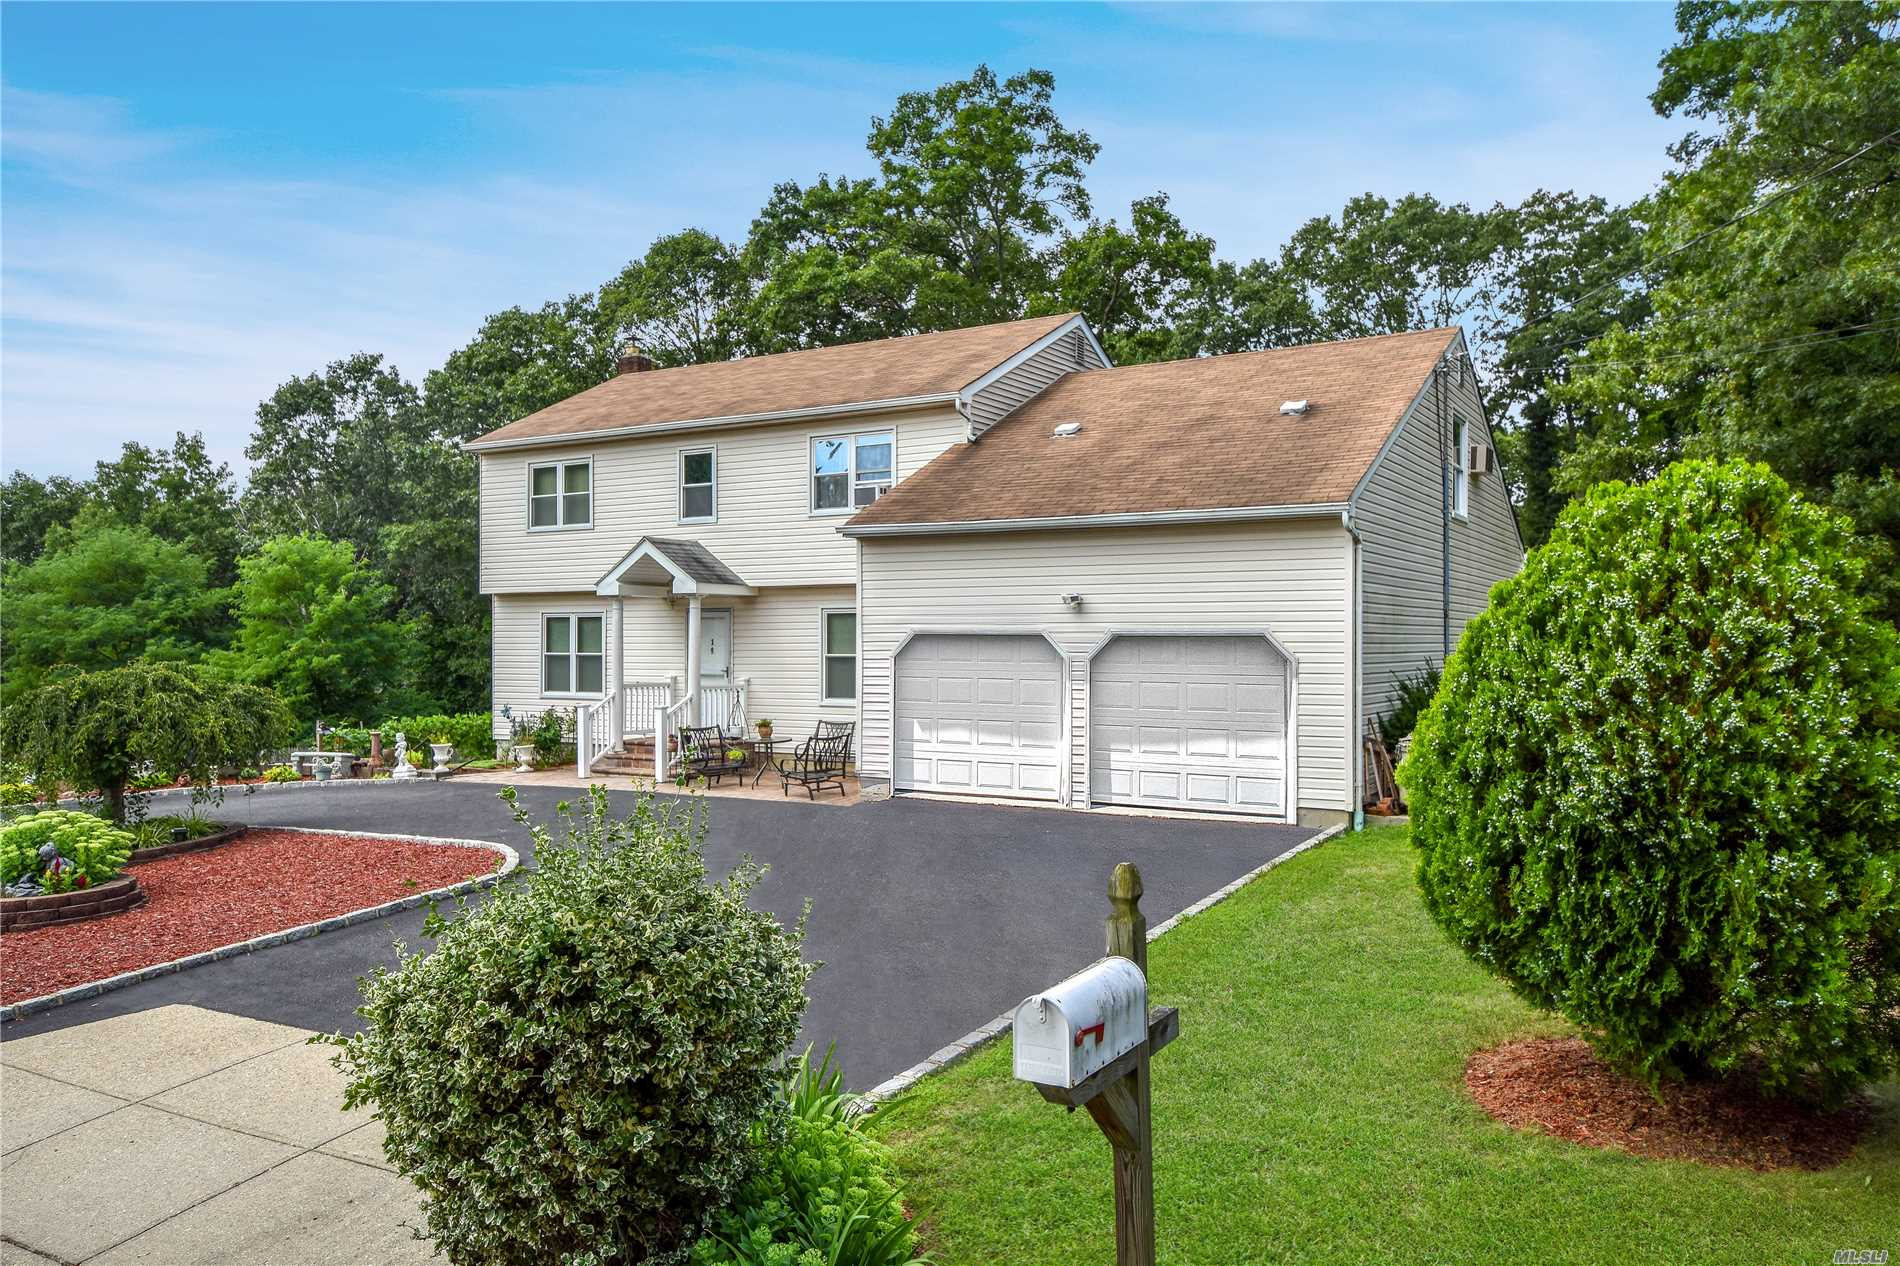 Room For Mom - Well Maintained 4 Bed/3.5 Bath Colonial On A Quiet Cul-De-Sac In The Half Hollow Hills School District. Hardwood & Ceramic Floors, Flr, Fdr, Eik, Updated Bathrooms, Gas Heat, Mast Br With Wic, Large Br On 2nd Level. Basement W/ Ose On Ground Floor Level. Very Spacious! Sliders To Deck, 2nd Deck On Lower Level, Manicured Yard, 1.5 Car Garage Can Be Easily Converted Back To 2 Car Garage.